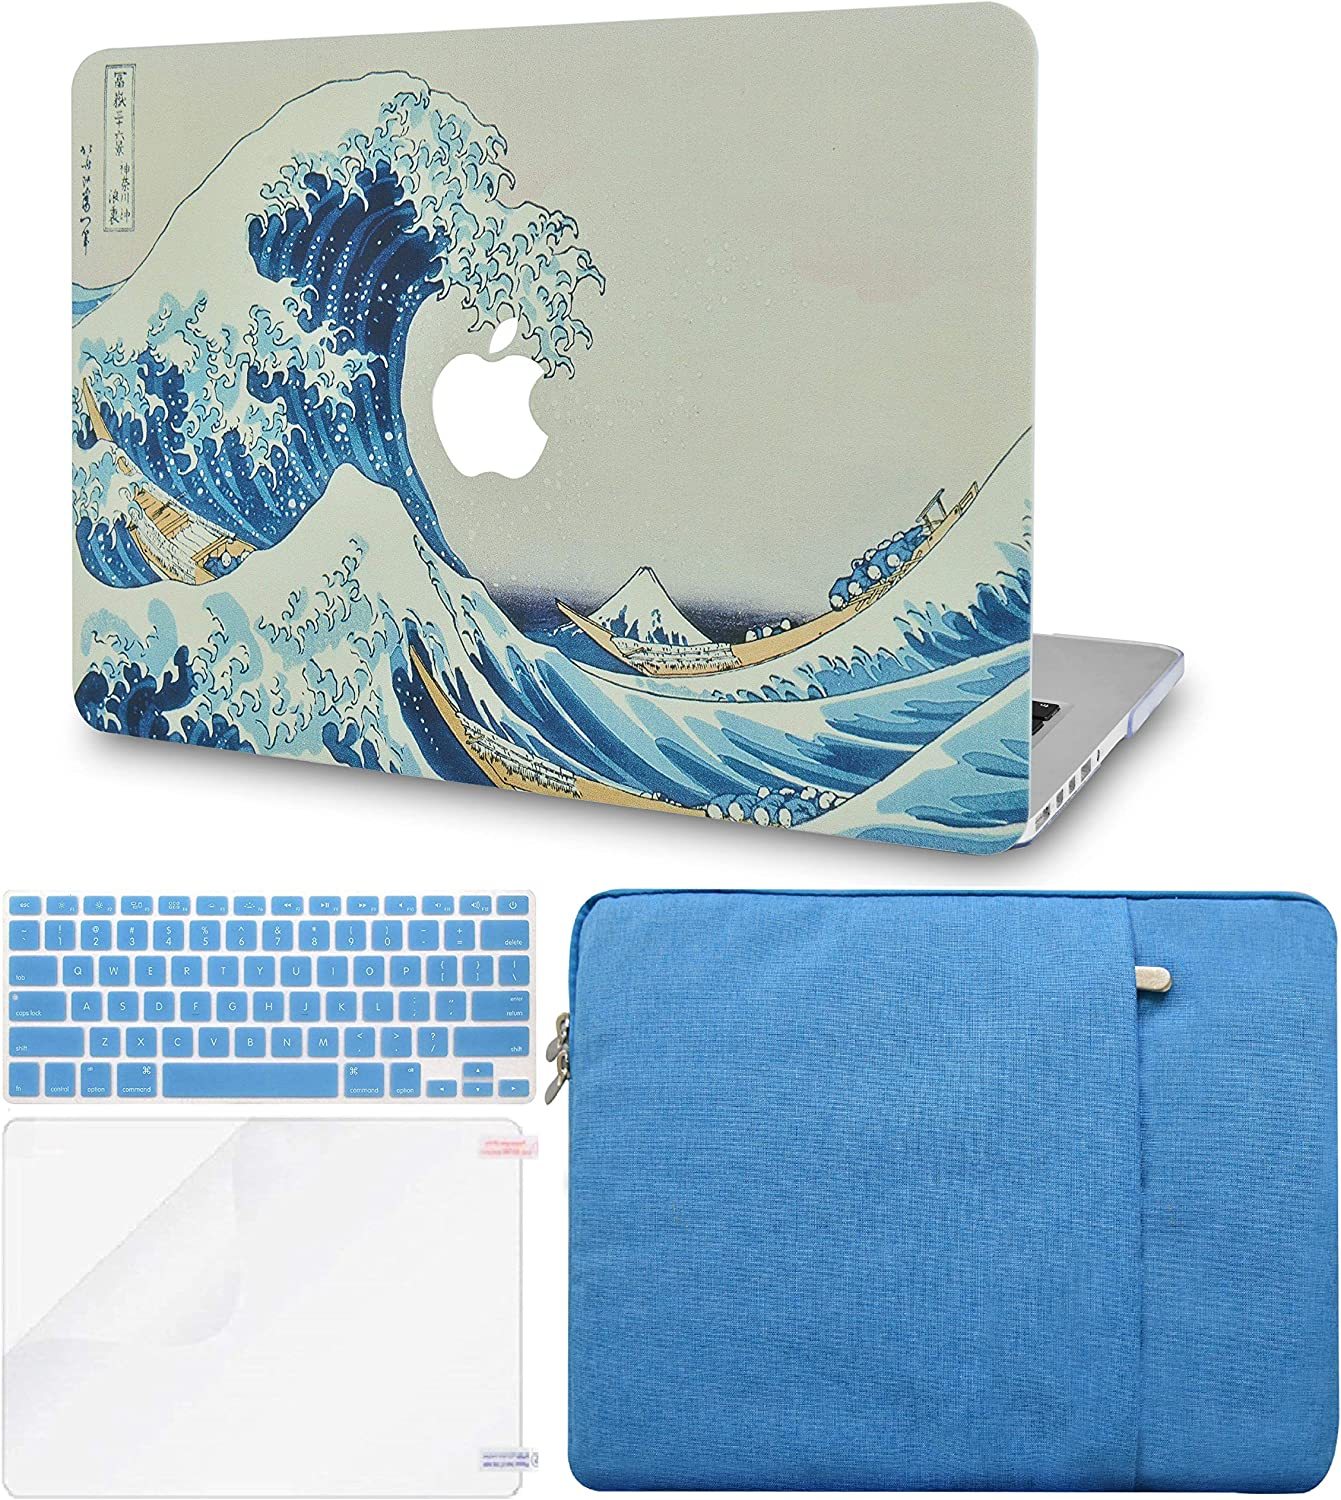 LuvCase 4 in 1 LaptopCase forMacBookAir 13 Inch A1466 / A1369 (No Touch ID)(2010-2017) HardShellCover, Sleeve, Keyboard Cover & Screen Protector(Japanese Wave)